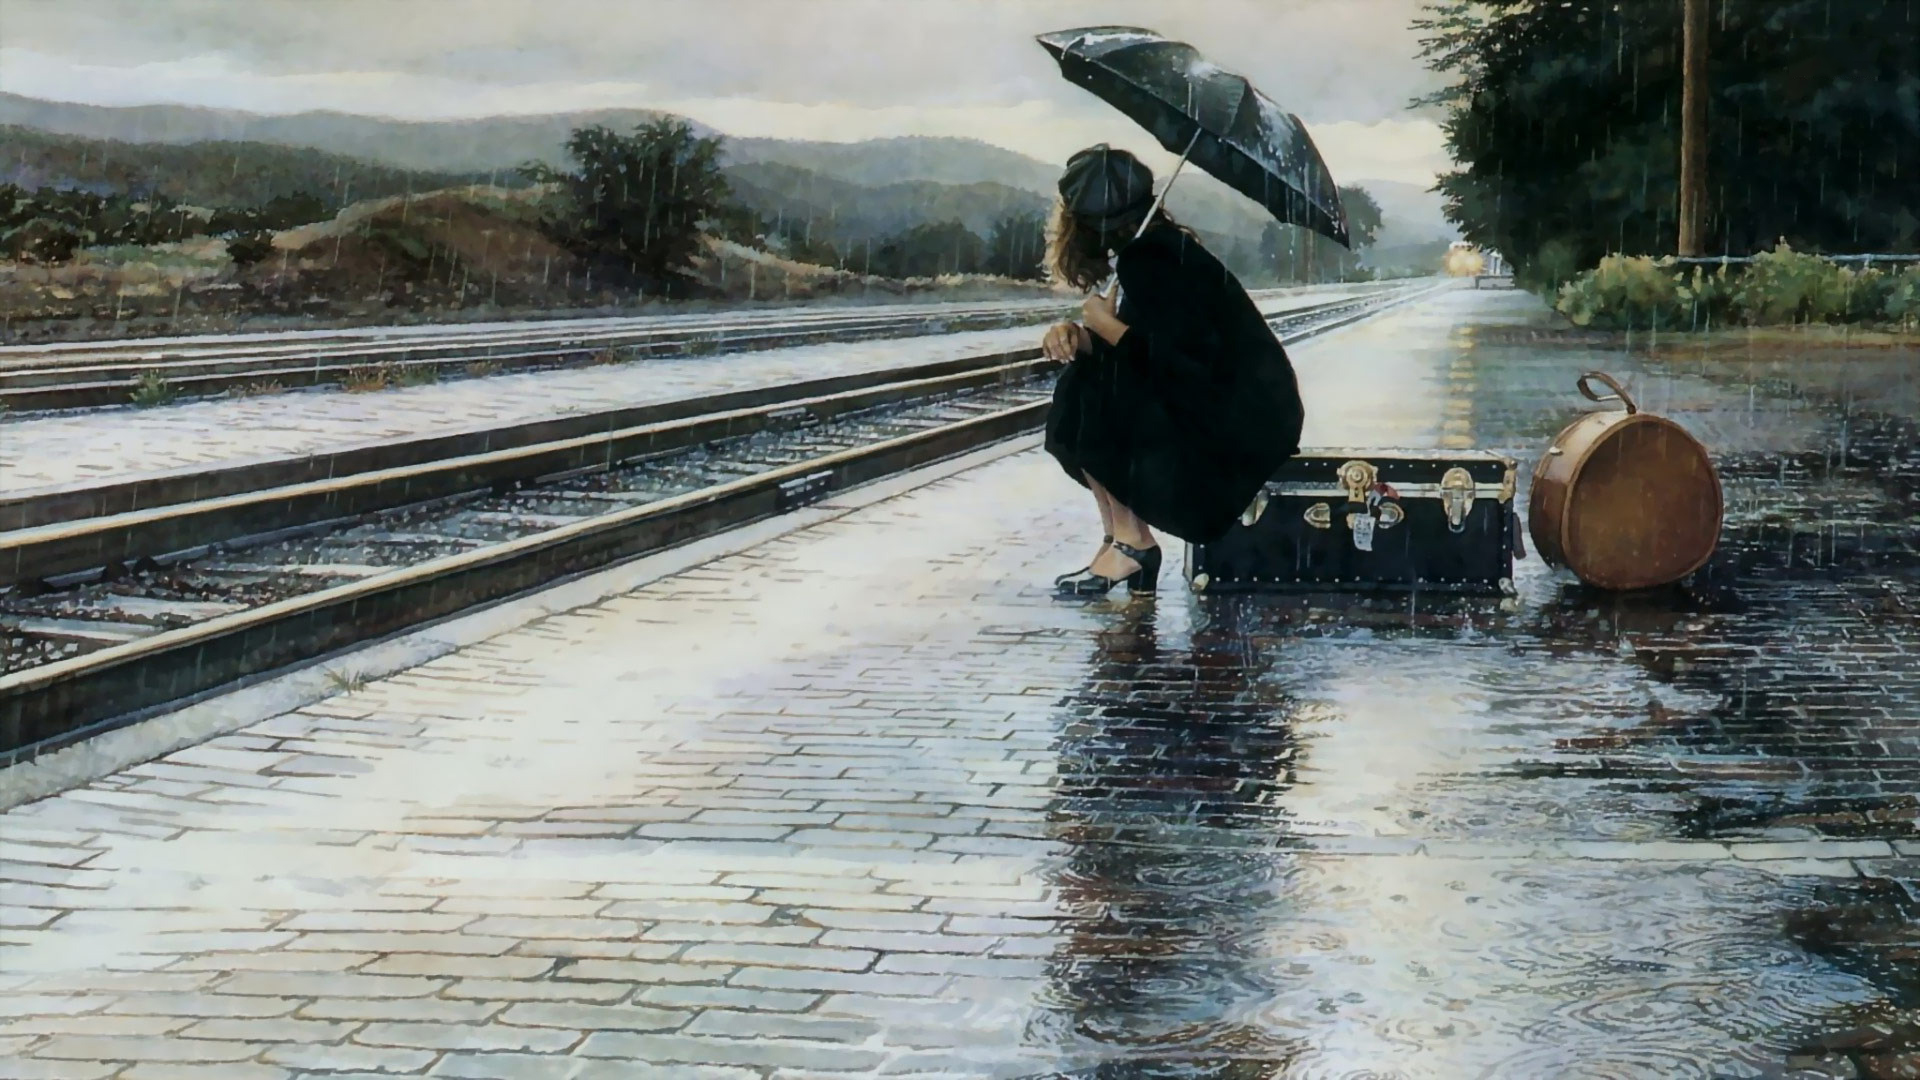 Waiting for Train in Rain - Top 10 HD Raindrop Wallpapers for Your Desktop